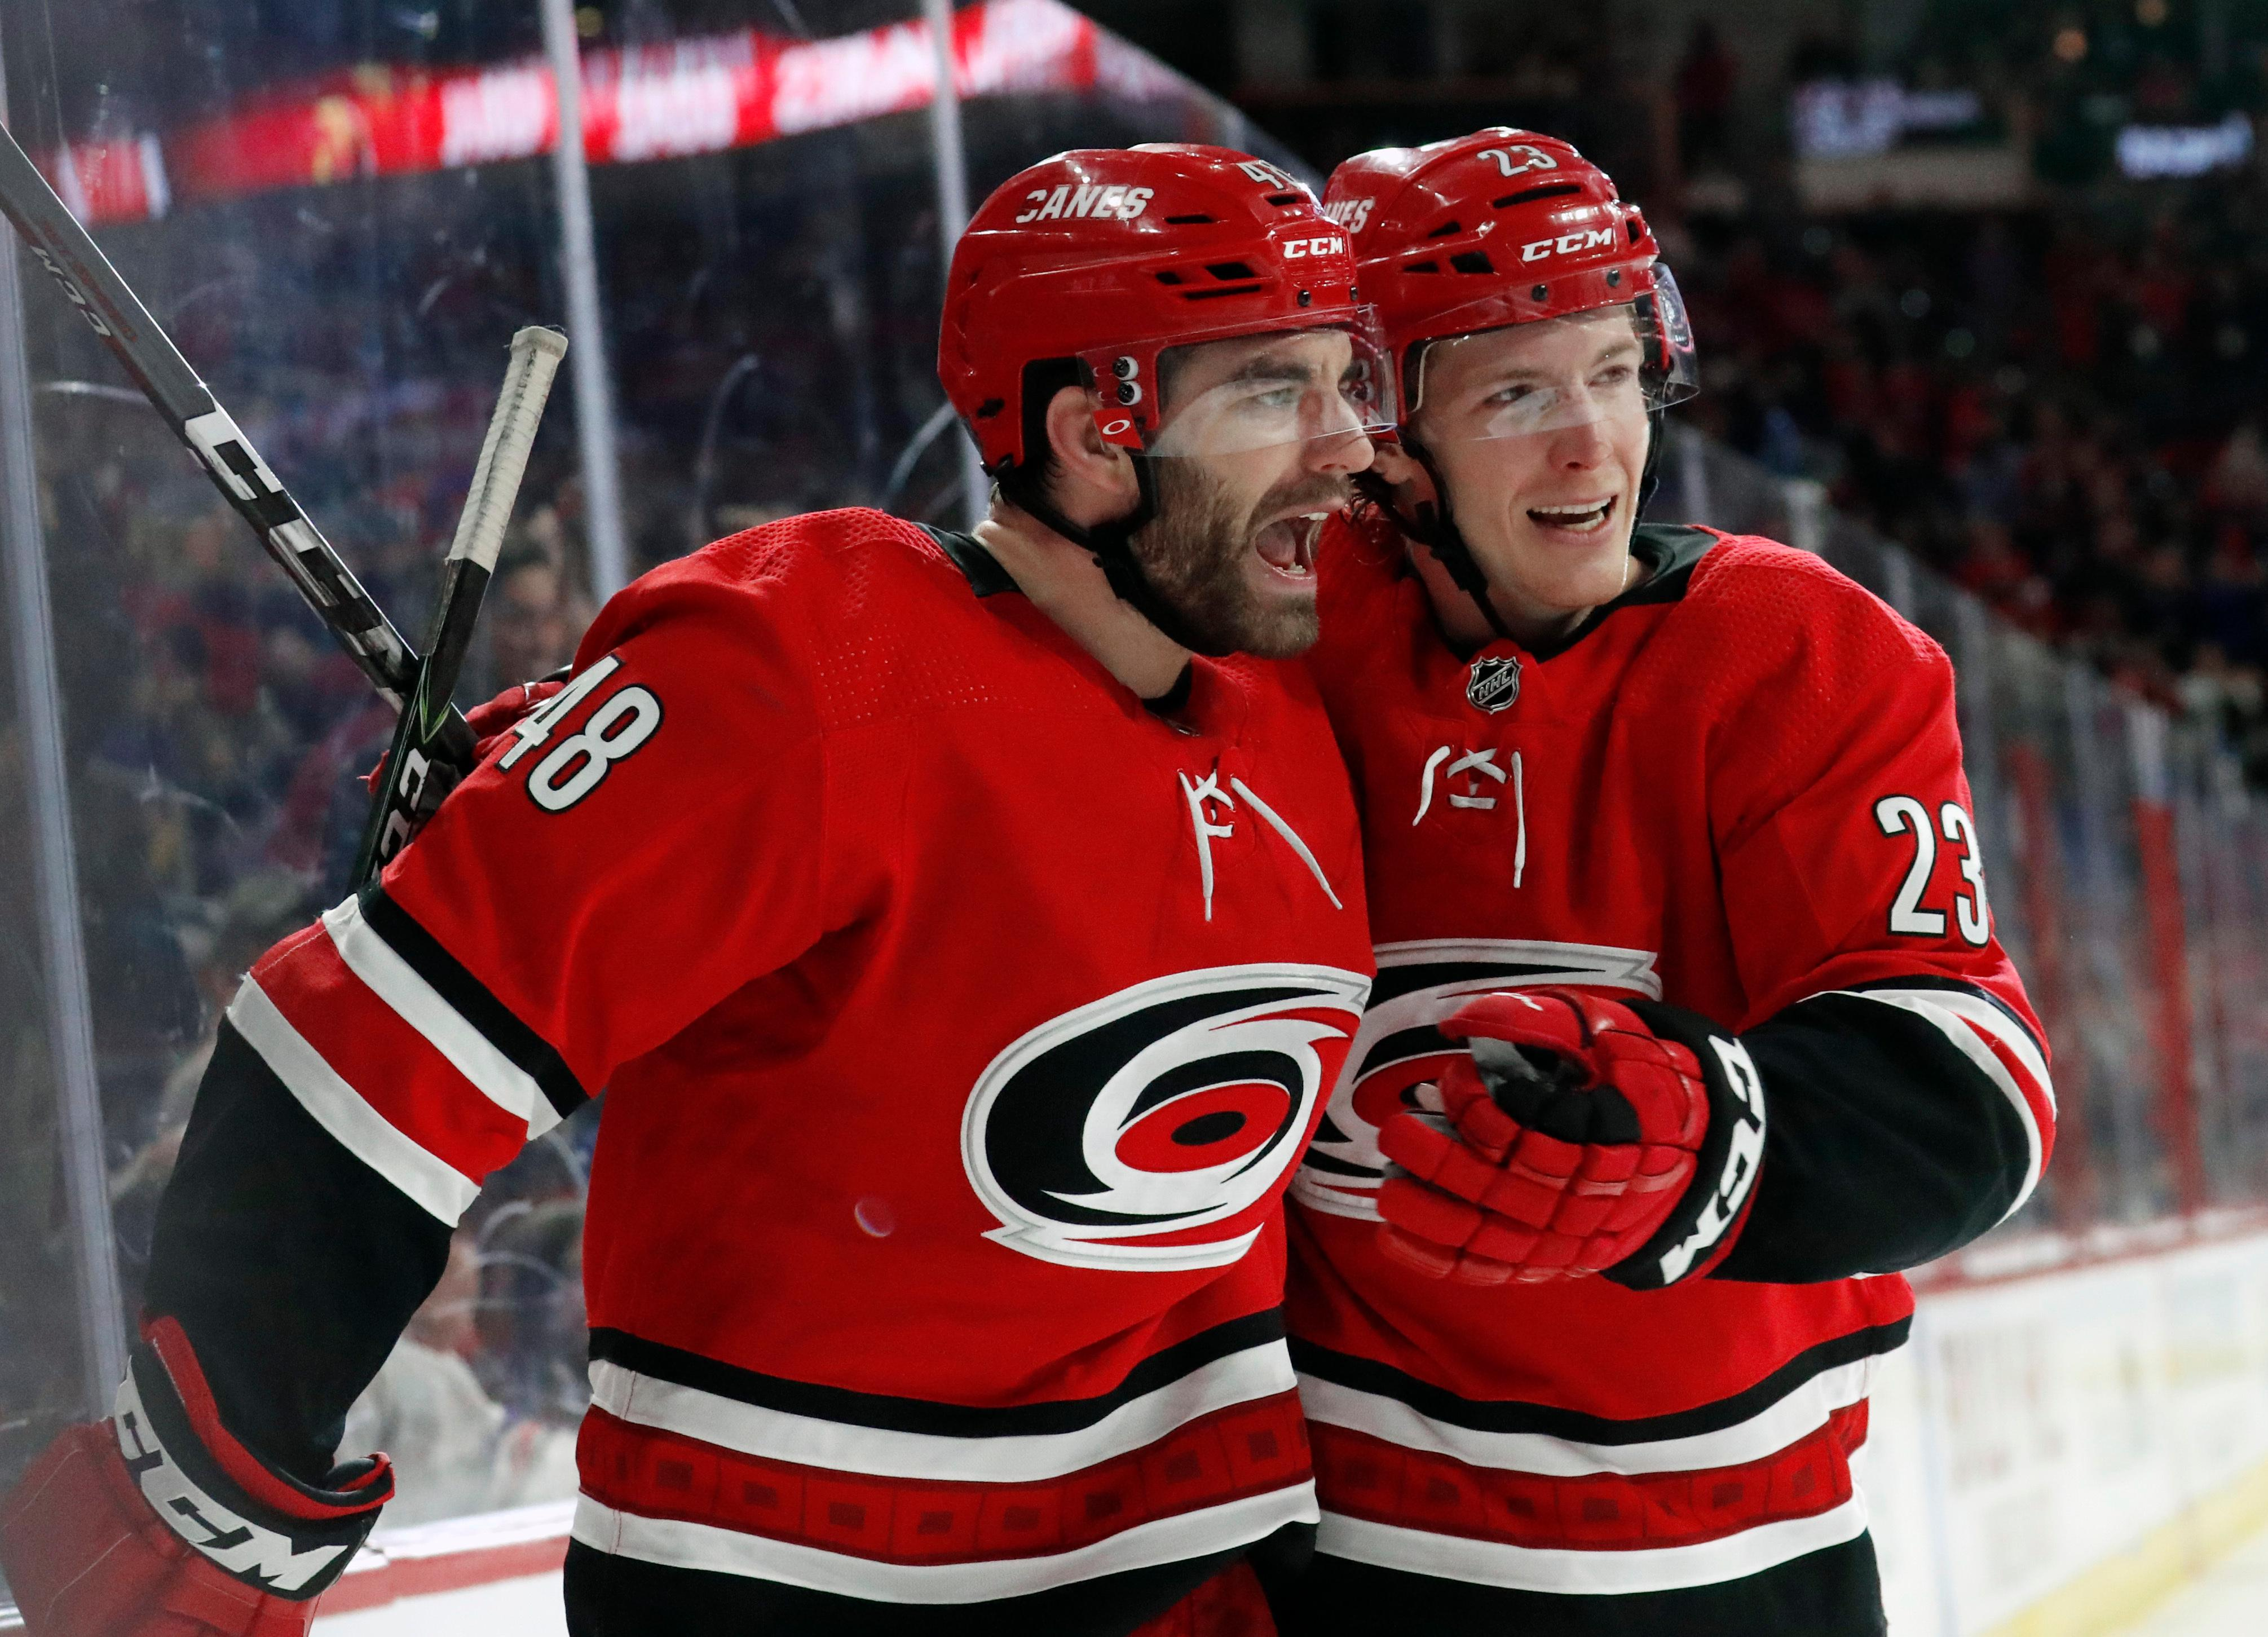 Carolina Hurricanes' Jordan Martinook (48) celebrates his goal with Brock McGinn (23) during the second period of an NHL hockey game against the New York Rangers in Raleigh, N.C., Tuesday, Feb. 19, 2019. (AP Photo/Chris Seward)